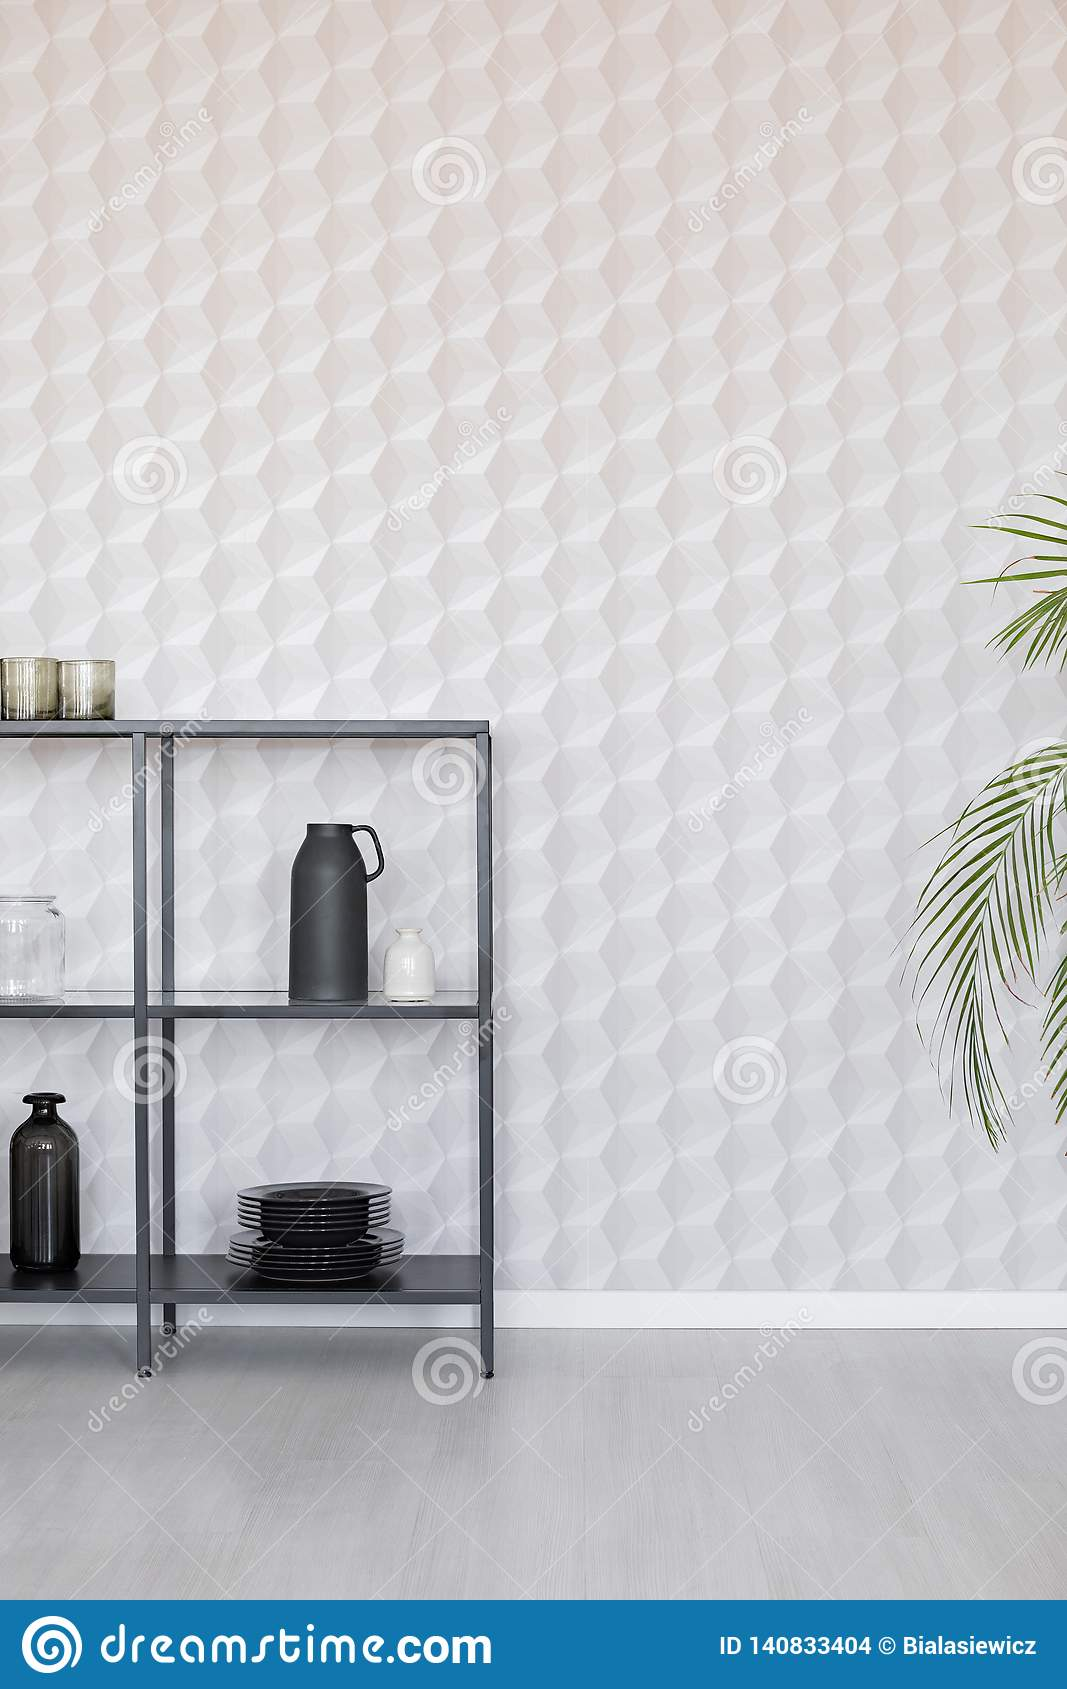 Metal shelf with vases, plate and accessories on empty wall wall with unique wallpaper, real photo with copy space